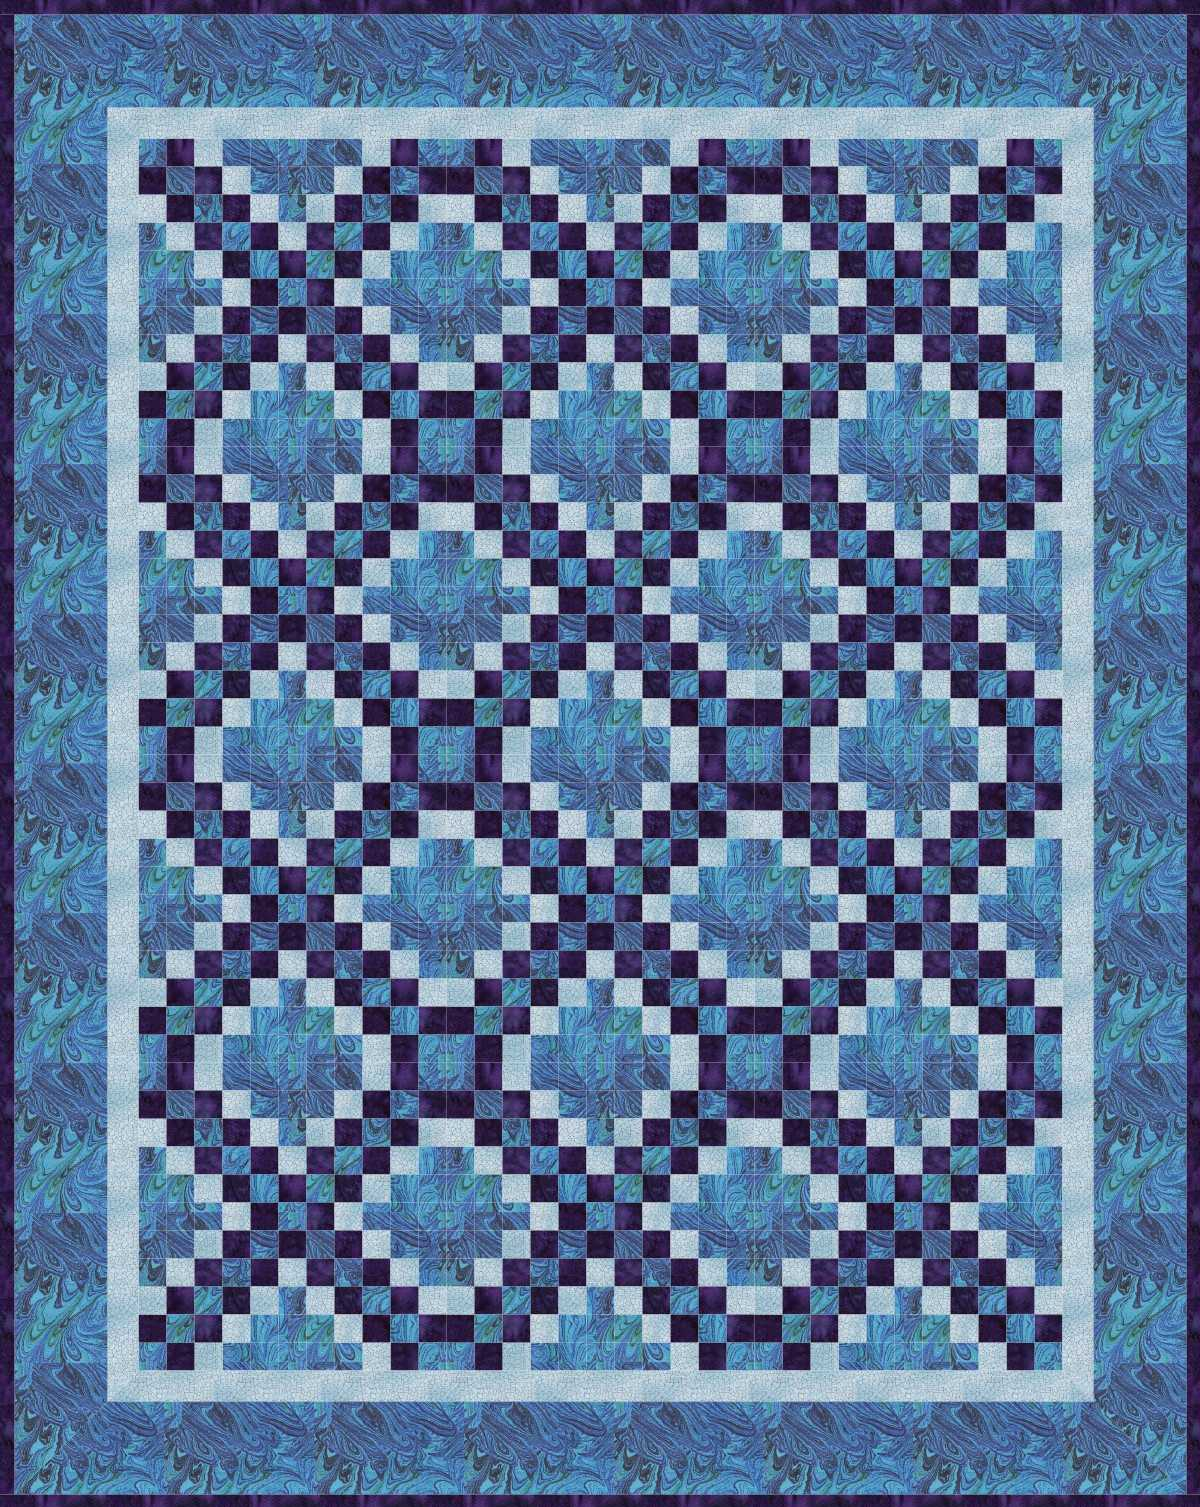 Kathy K. Wylie Quilts – Geometric SHAPES in Quilts: Squares and ... : geometric quilt patterns free - Adamdwight.com